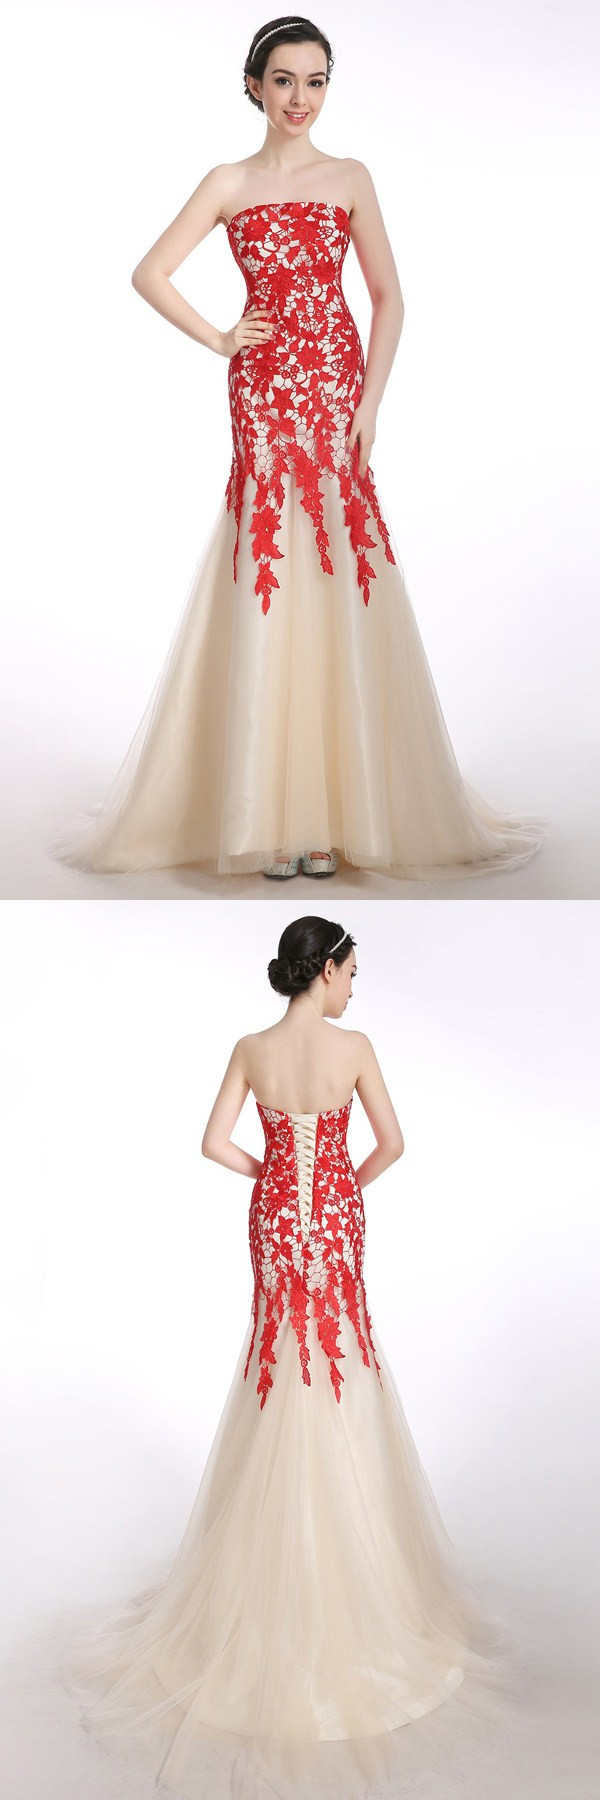 Mermaid strapless laceup long pron dress evening gwons with red